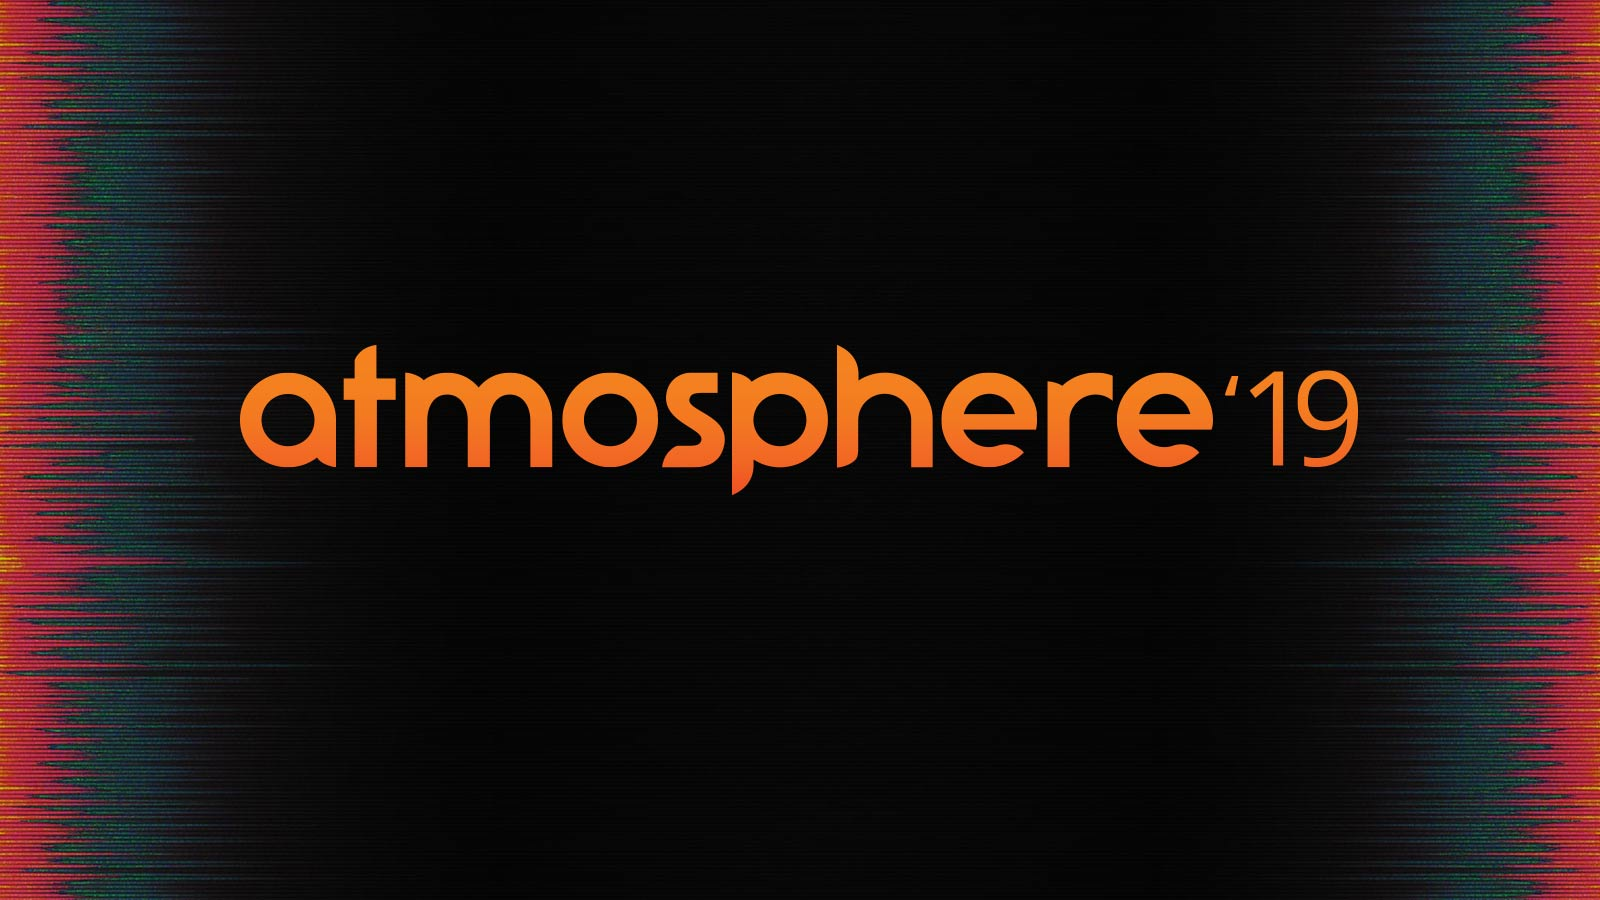 Atmosphere 2019 | Aruba